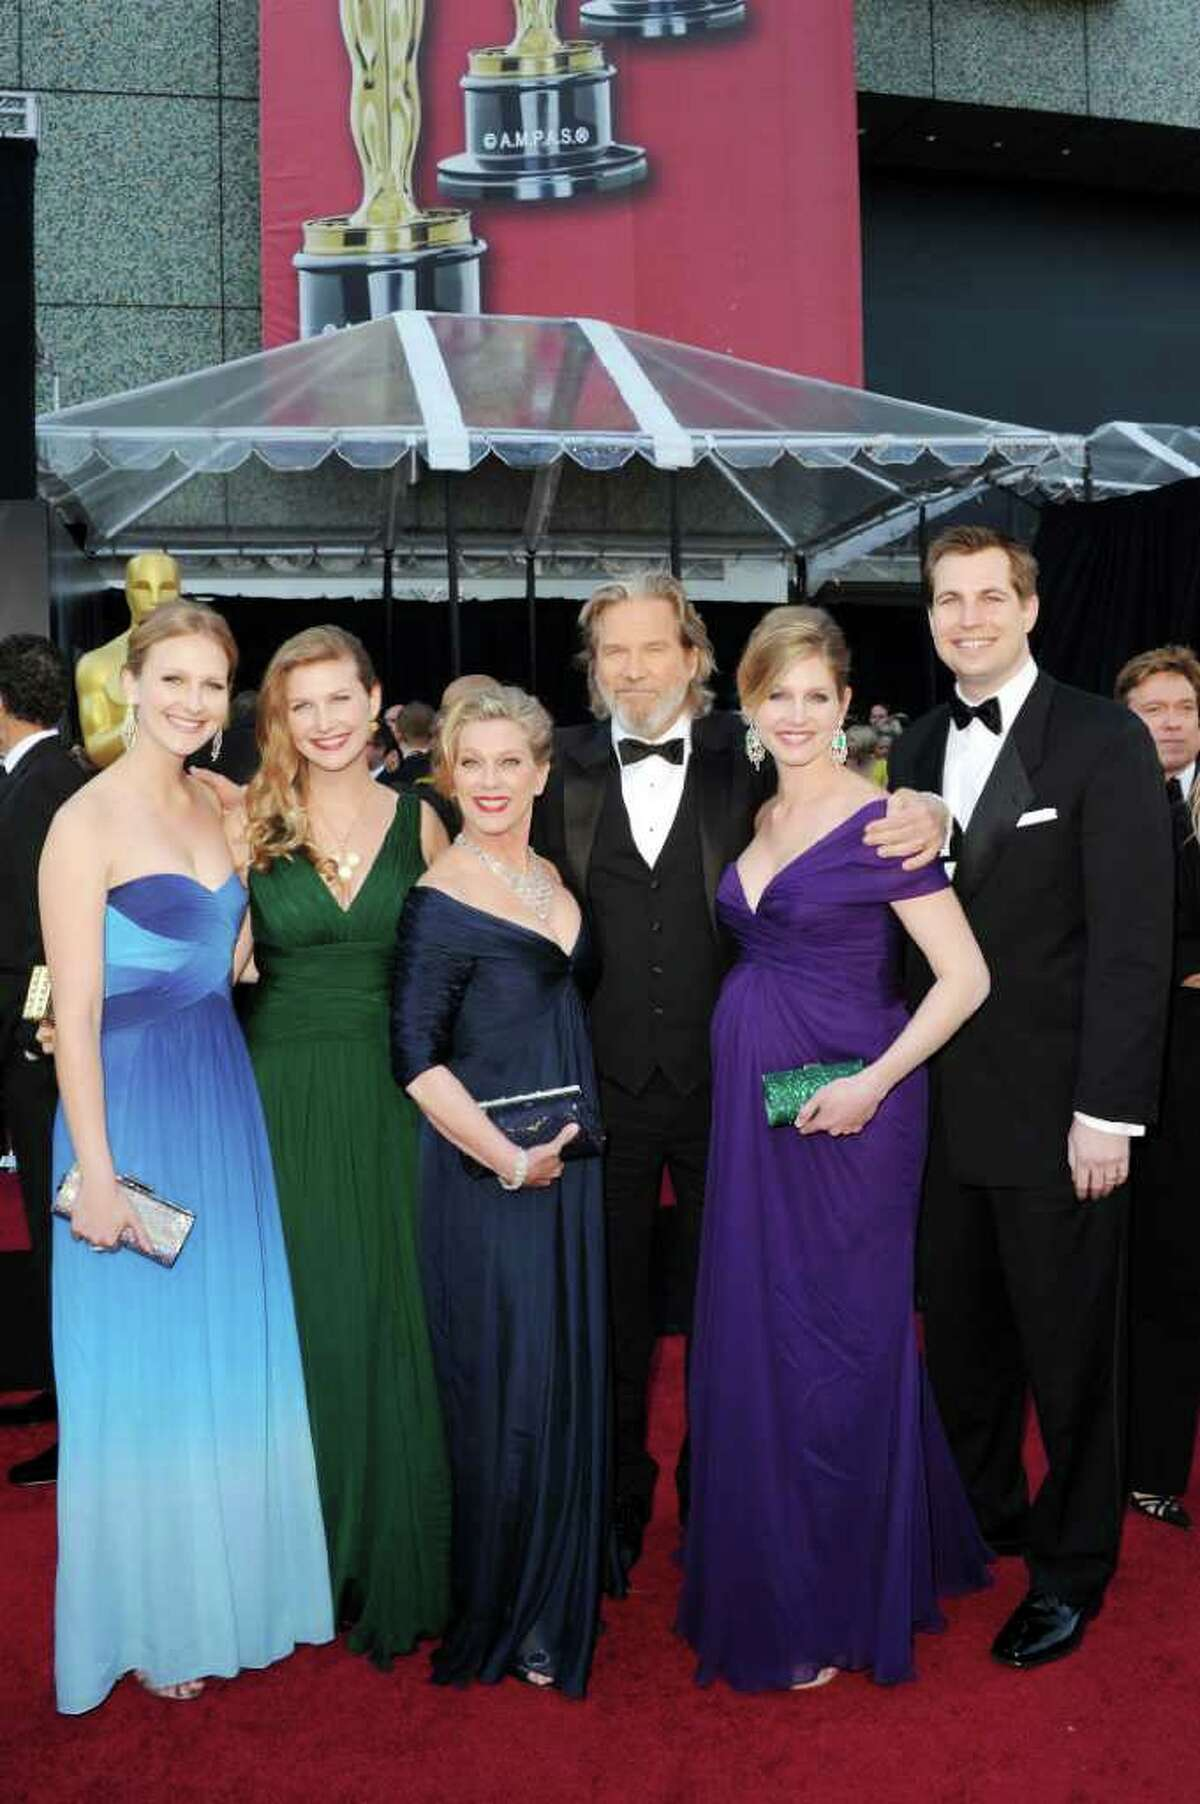 HOLLYWOOD, CA - FEBRUARY 27: Actor Jeff Bridges (C), wife Susan Bridges (2nd L), and family arrive at the 83rd Annual Academy Awards held at the Kodak Theatre on February 27, 2011 in Hollywood, California. (Photo by Jason Merritt/Getty Images) *** Local Caption *** Jeff Bridges;Susan Bridges